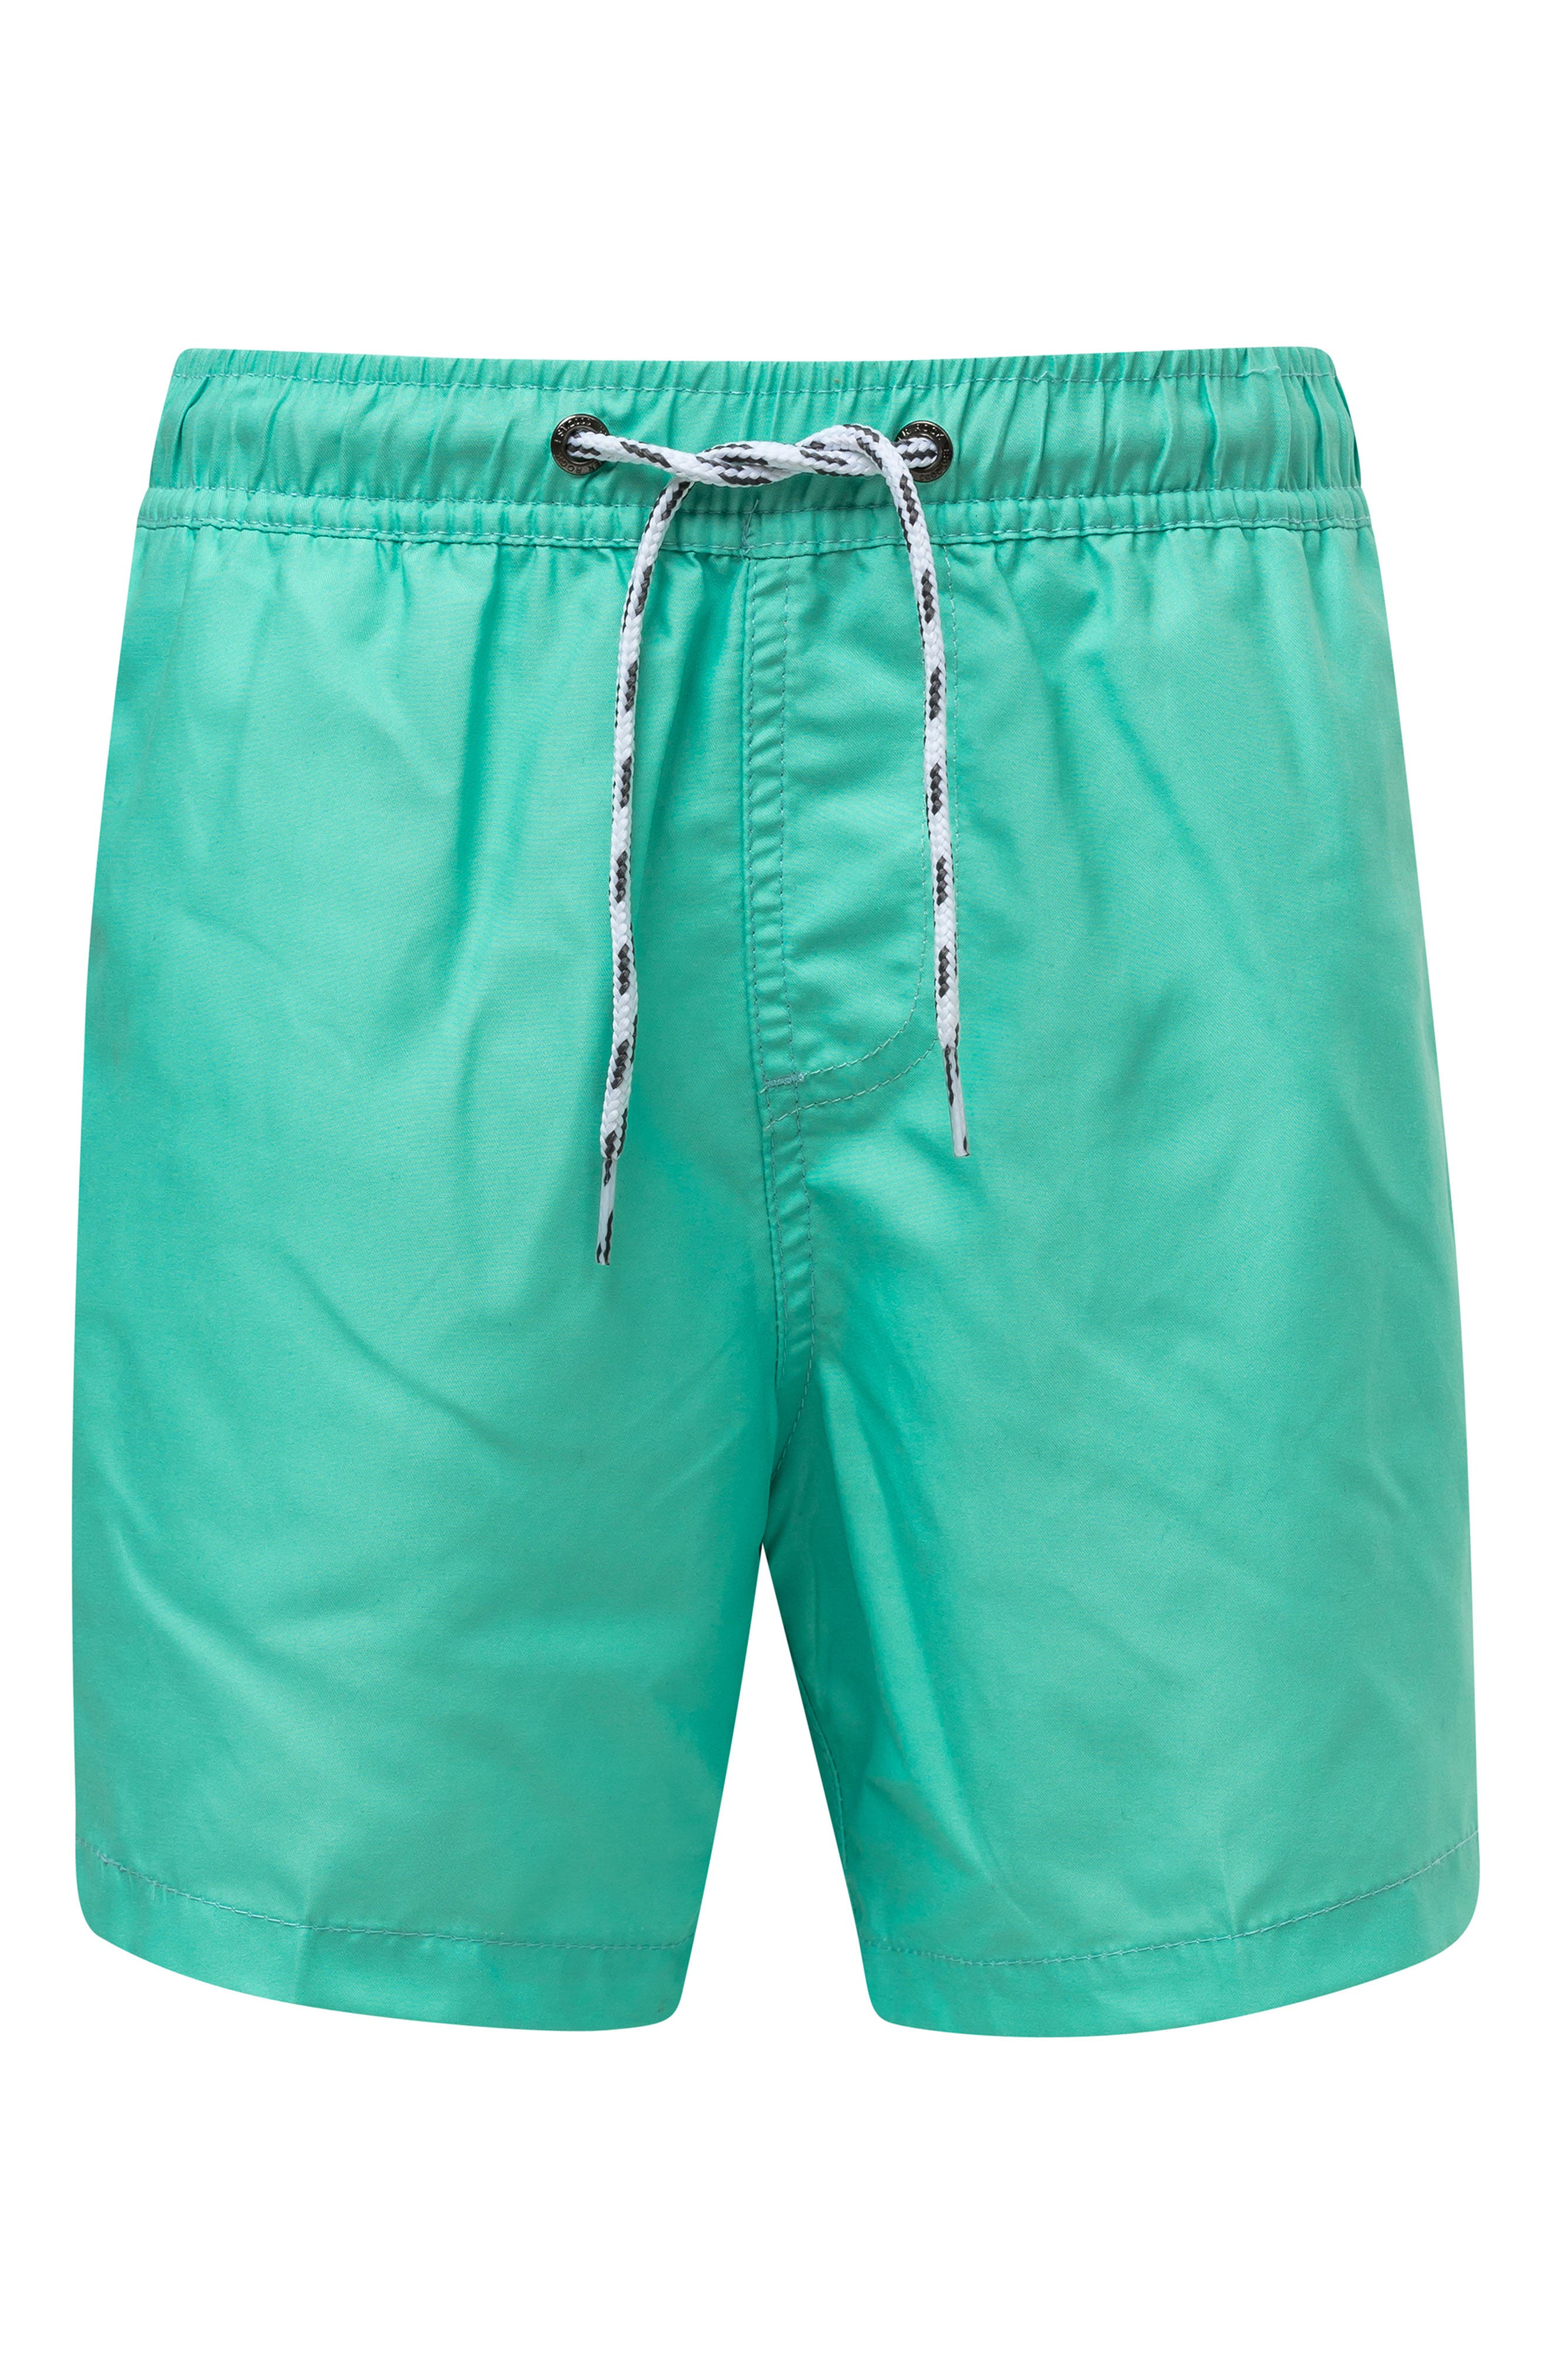 Mint Hybrid Board Shorts,                         Main,                         color, LIGHT PASTEL GREEN